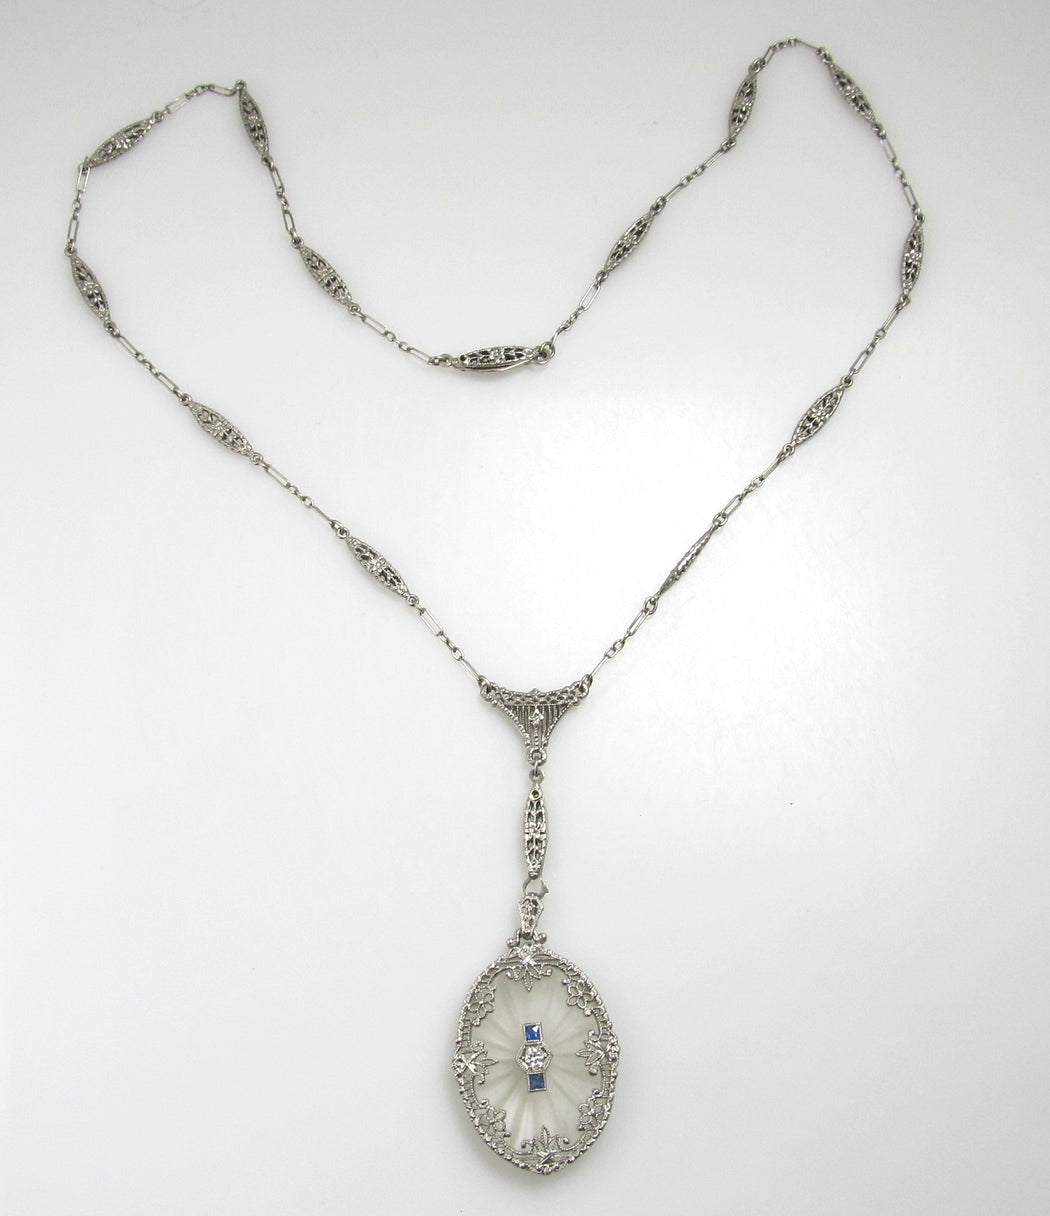 Antique filigree camphor glass necklace, victorious cape may